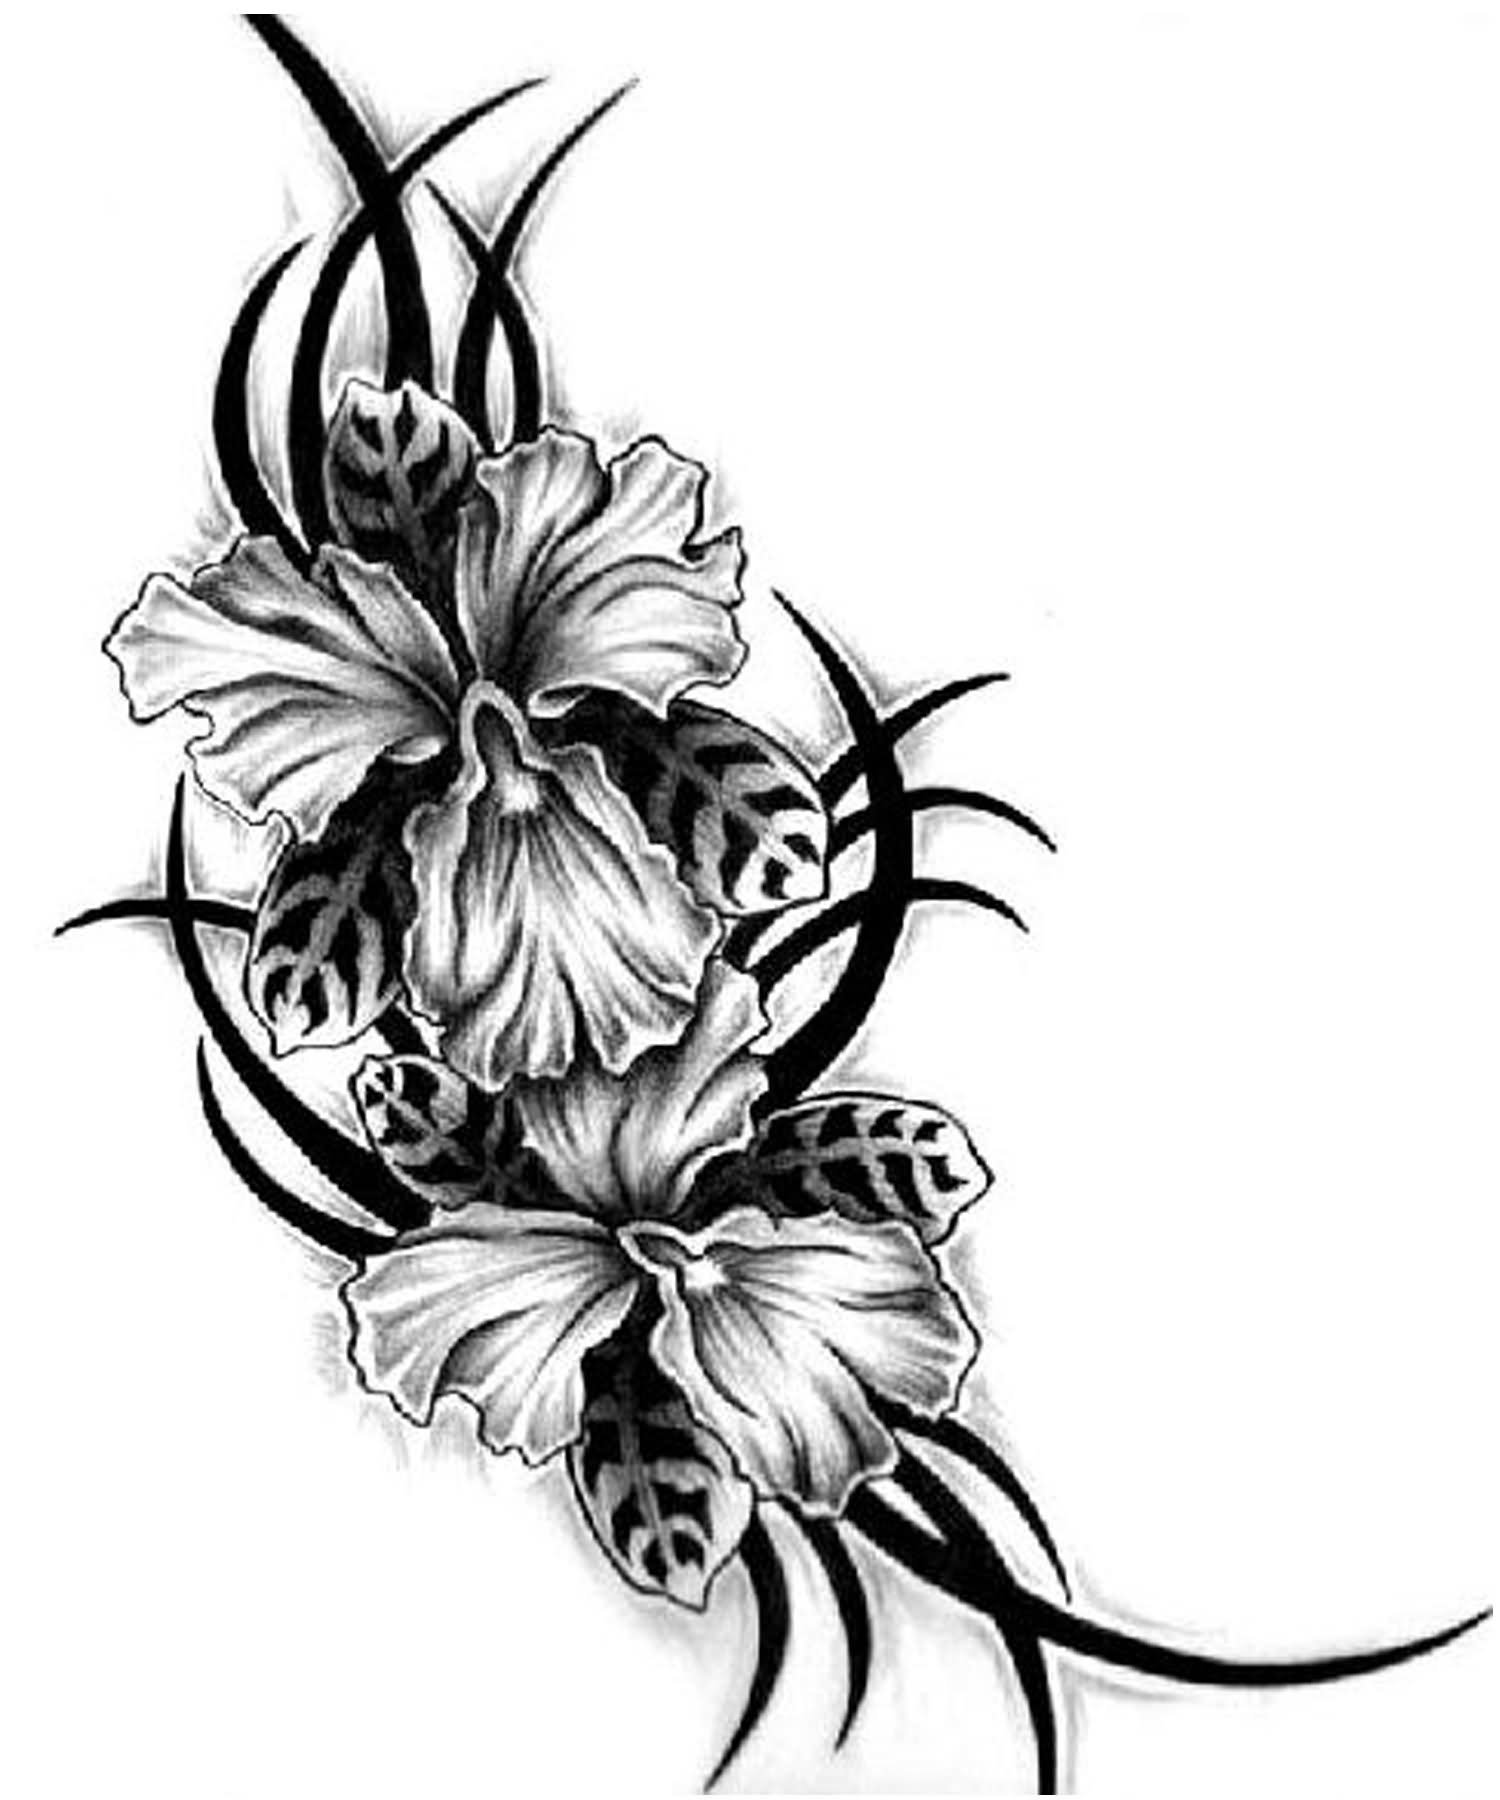 24 Hibiscus Flower Tattoos Designs Trends Ideas: 25+ Black And White Flower Tattoos